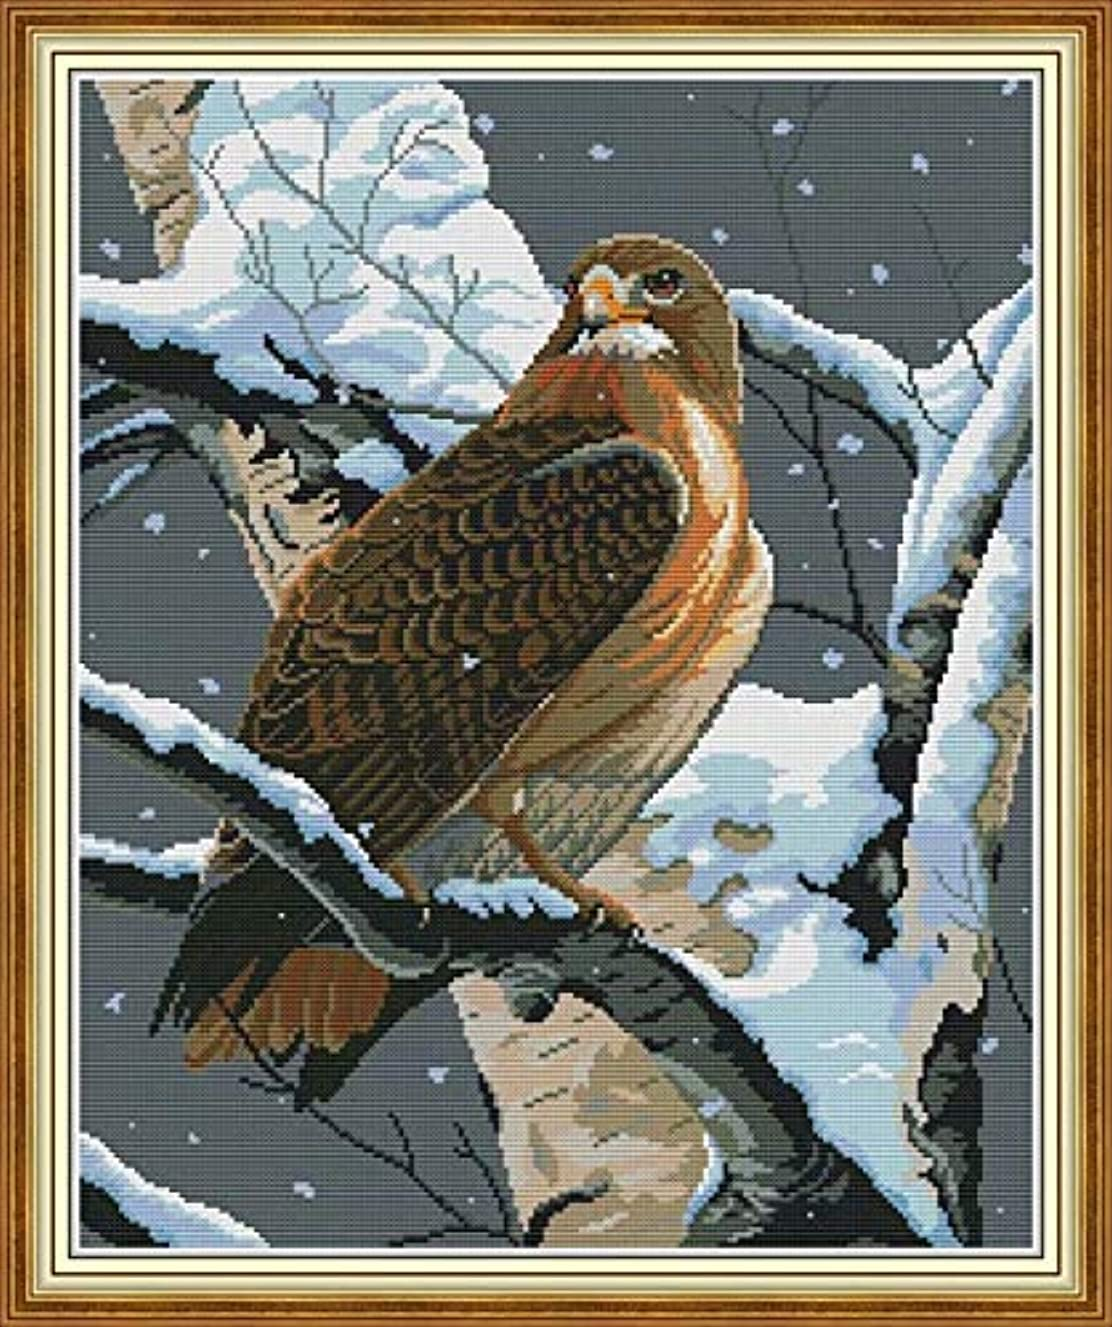 Joy Sunday Cross Stitch Kit 14CT Stamped Embroidery Kits Precise Printed Needlework - The Falcon in The Tree 43×50CM